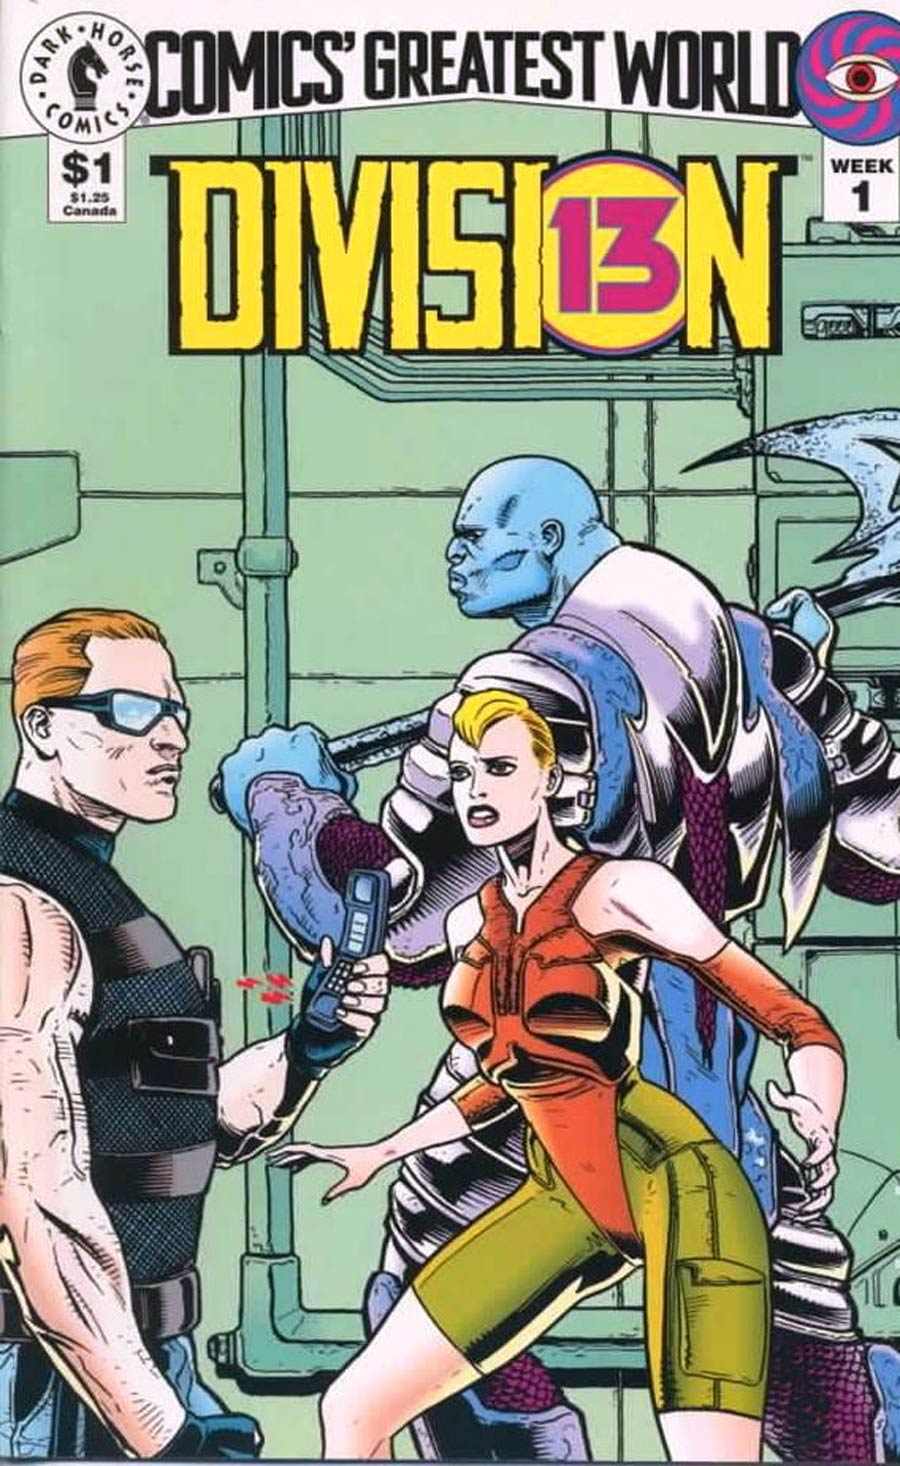 Comics Greatest World Vortex Week #1 Division Cover A